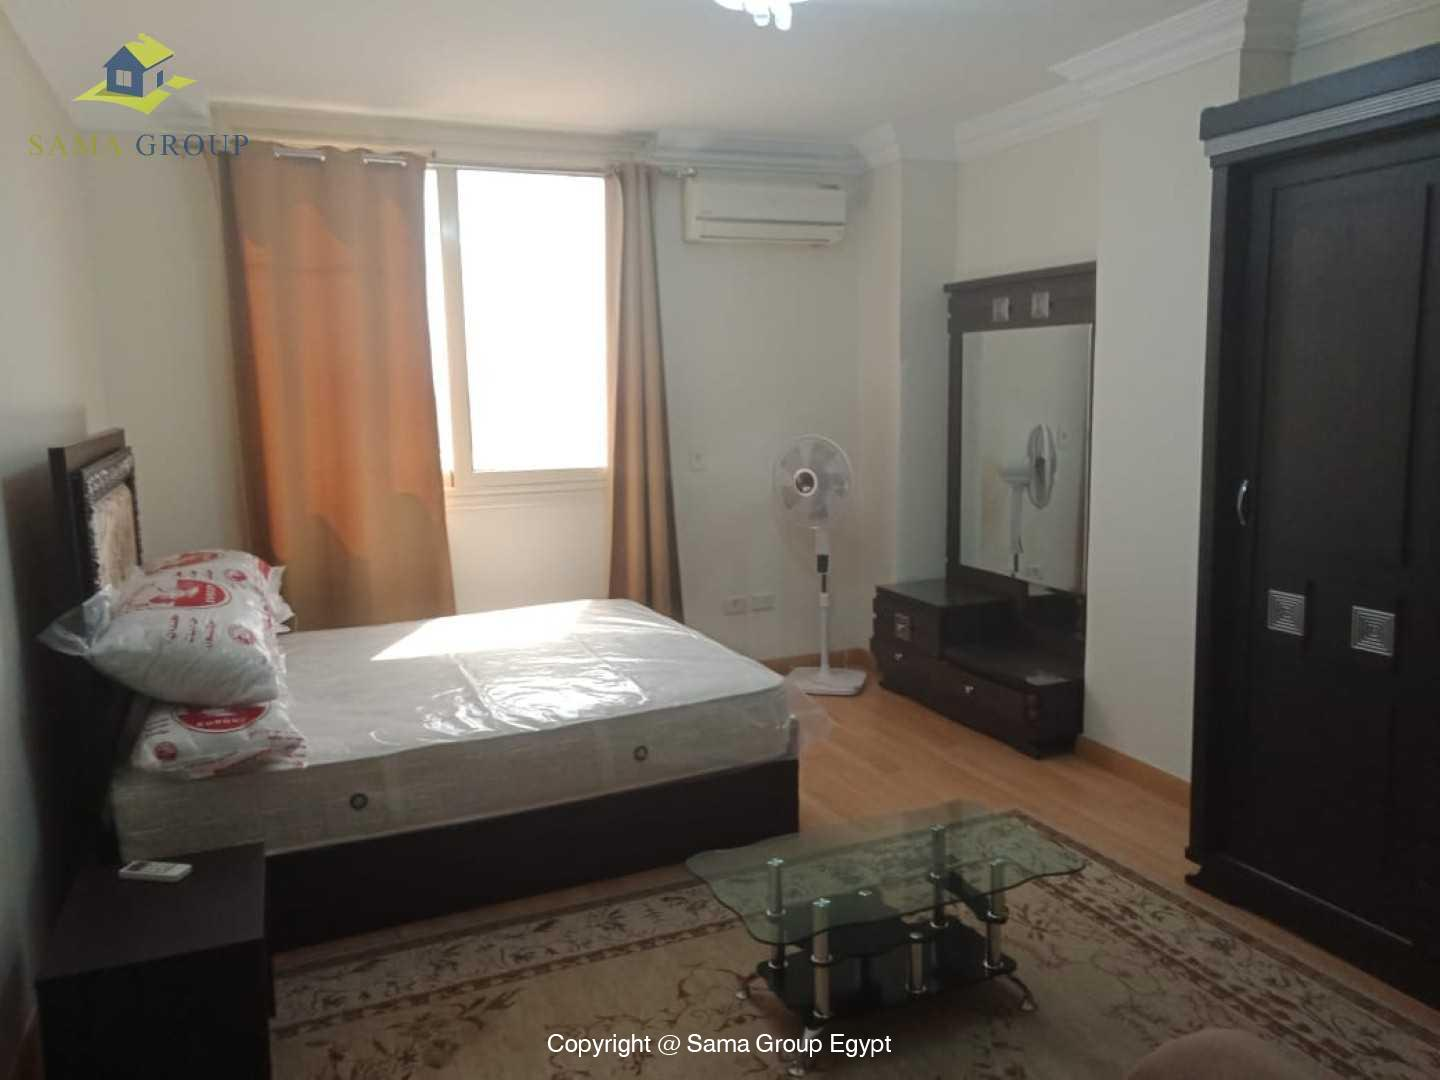 Furnished Apartment For Rent In Maadi Sarayat,Furnished,Apartment NO #10